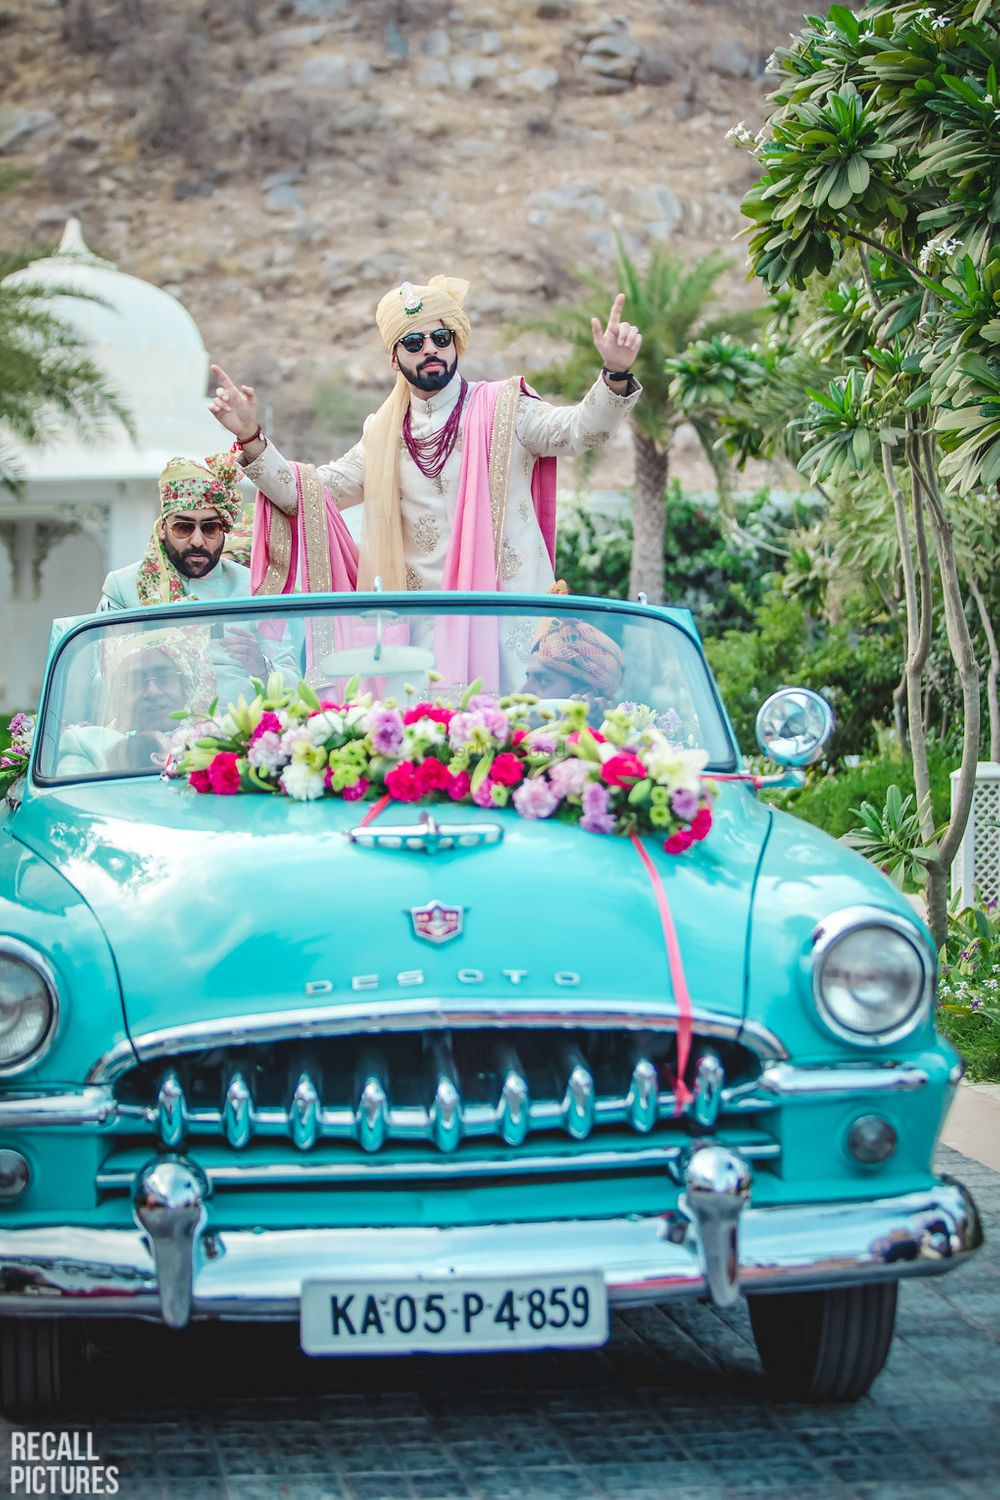 Photo of Groom dancing and entering in a vintage car